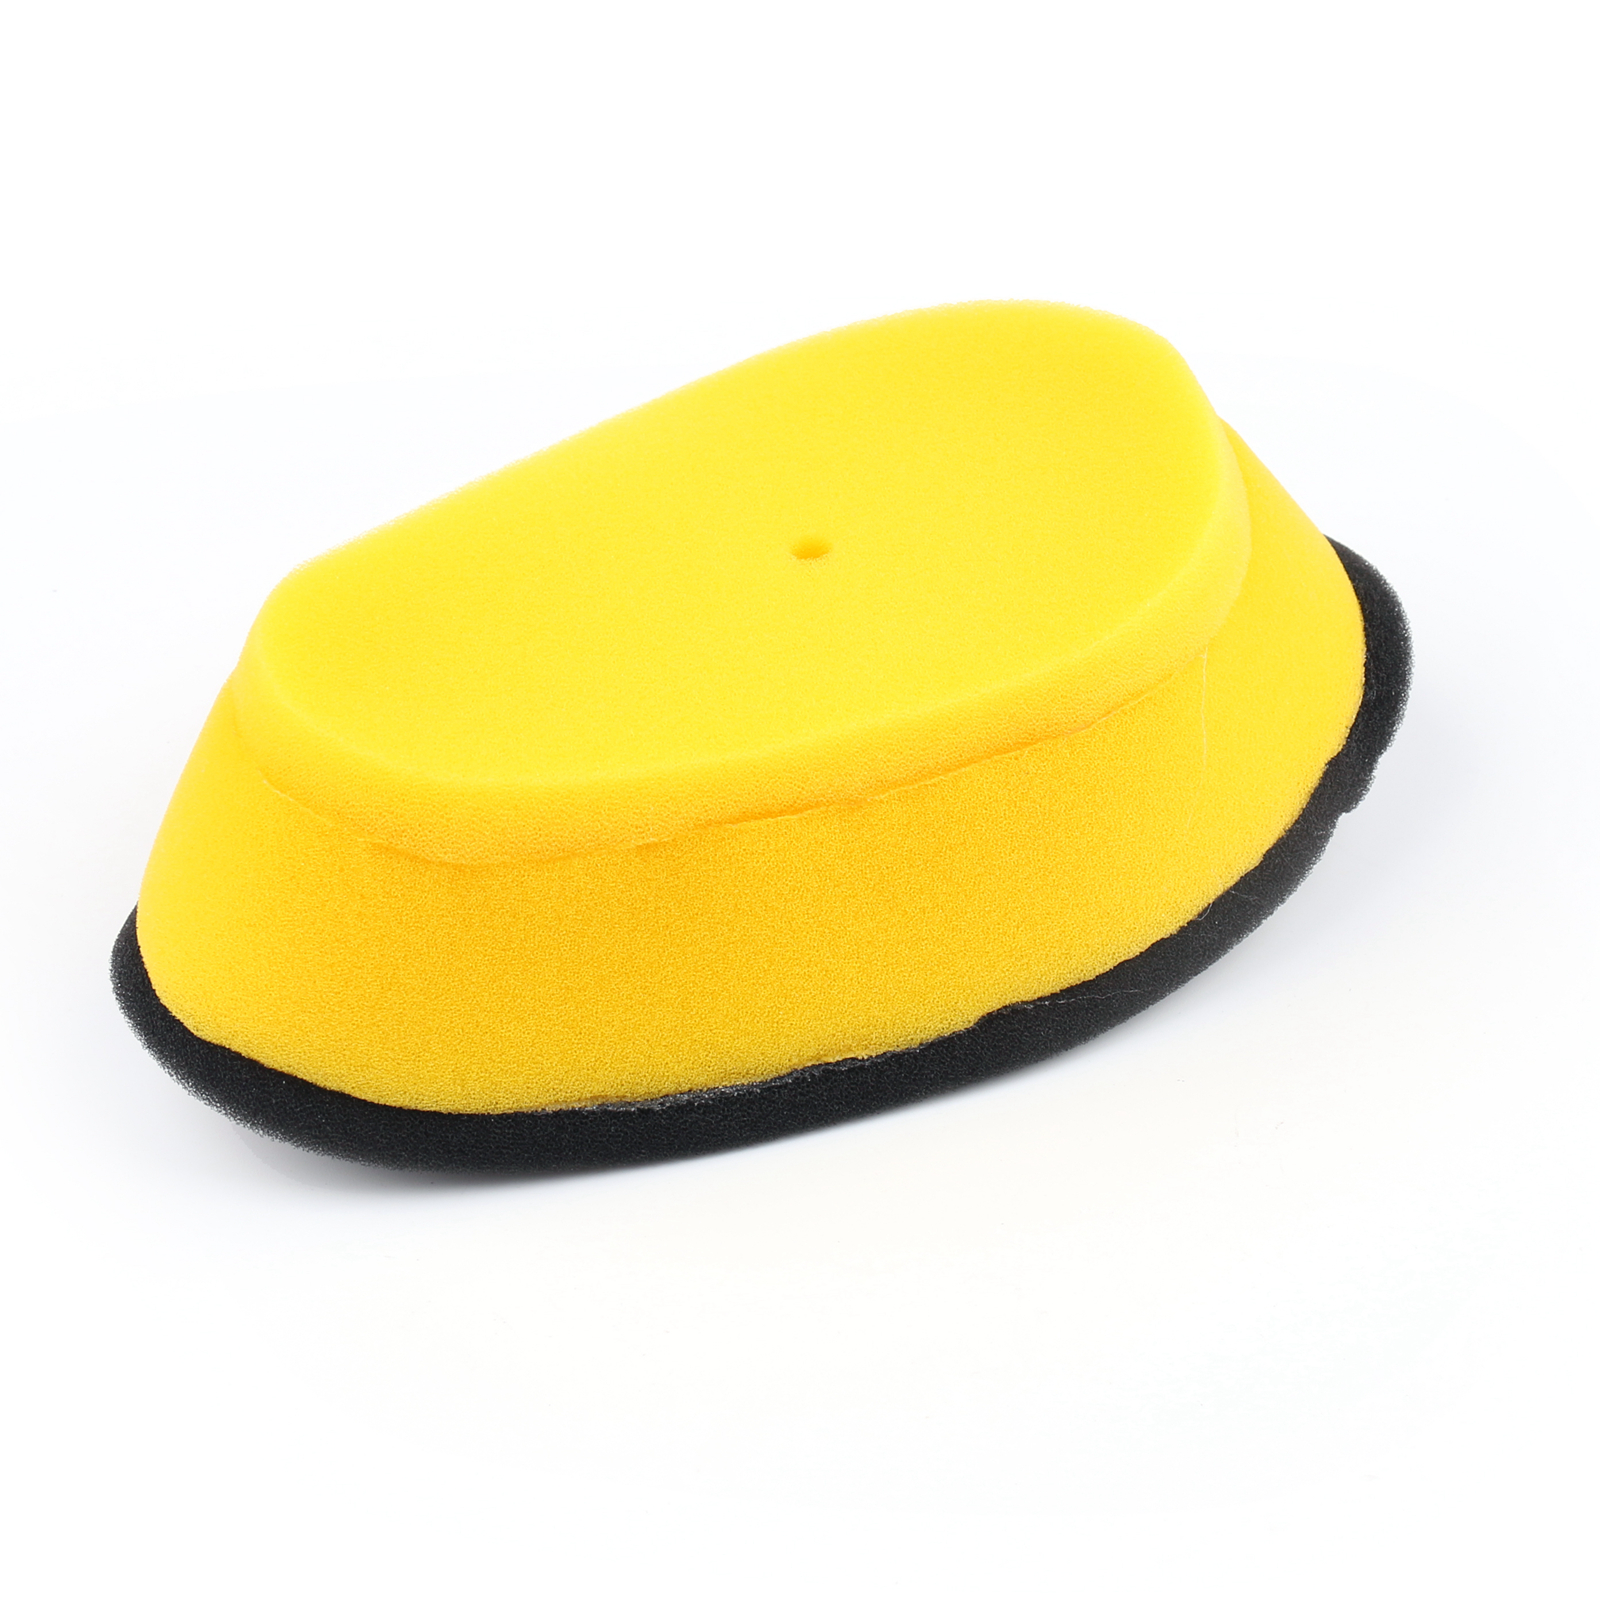 Air Filter Foam For Suzuki DR650 1996 2012 Yellow